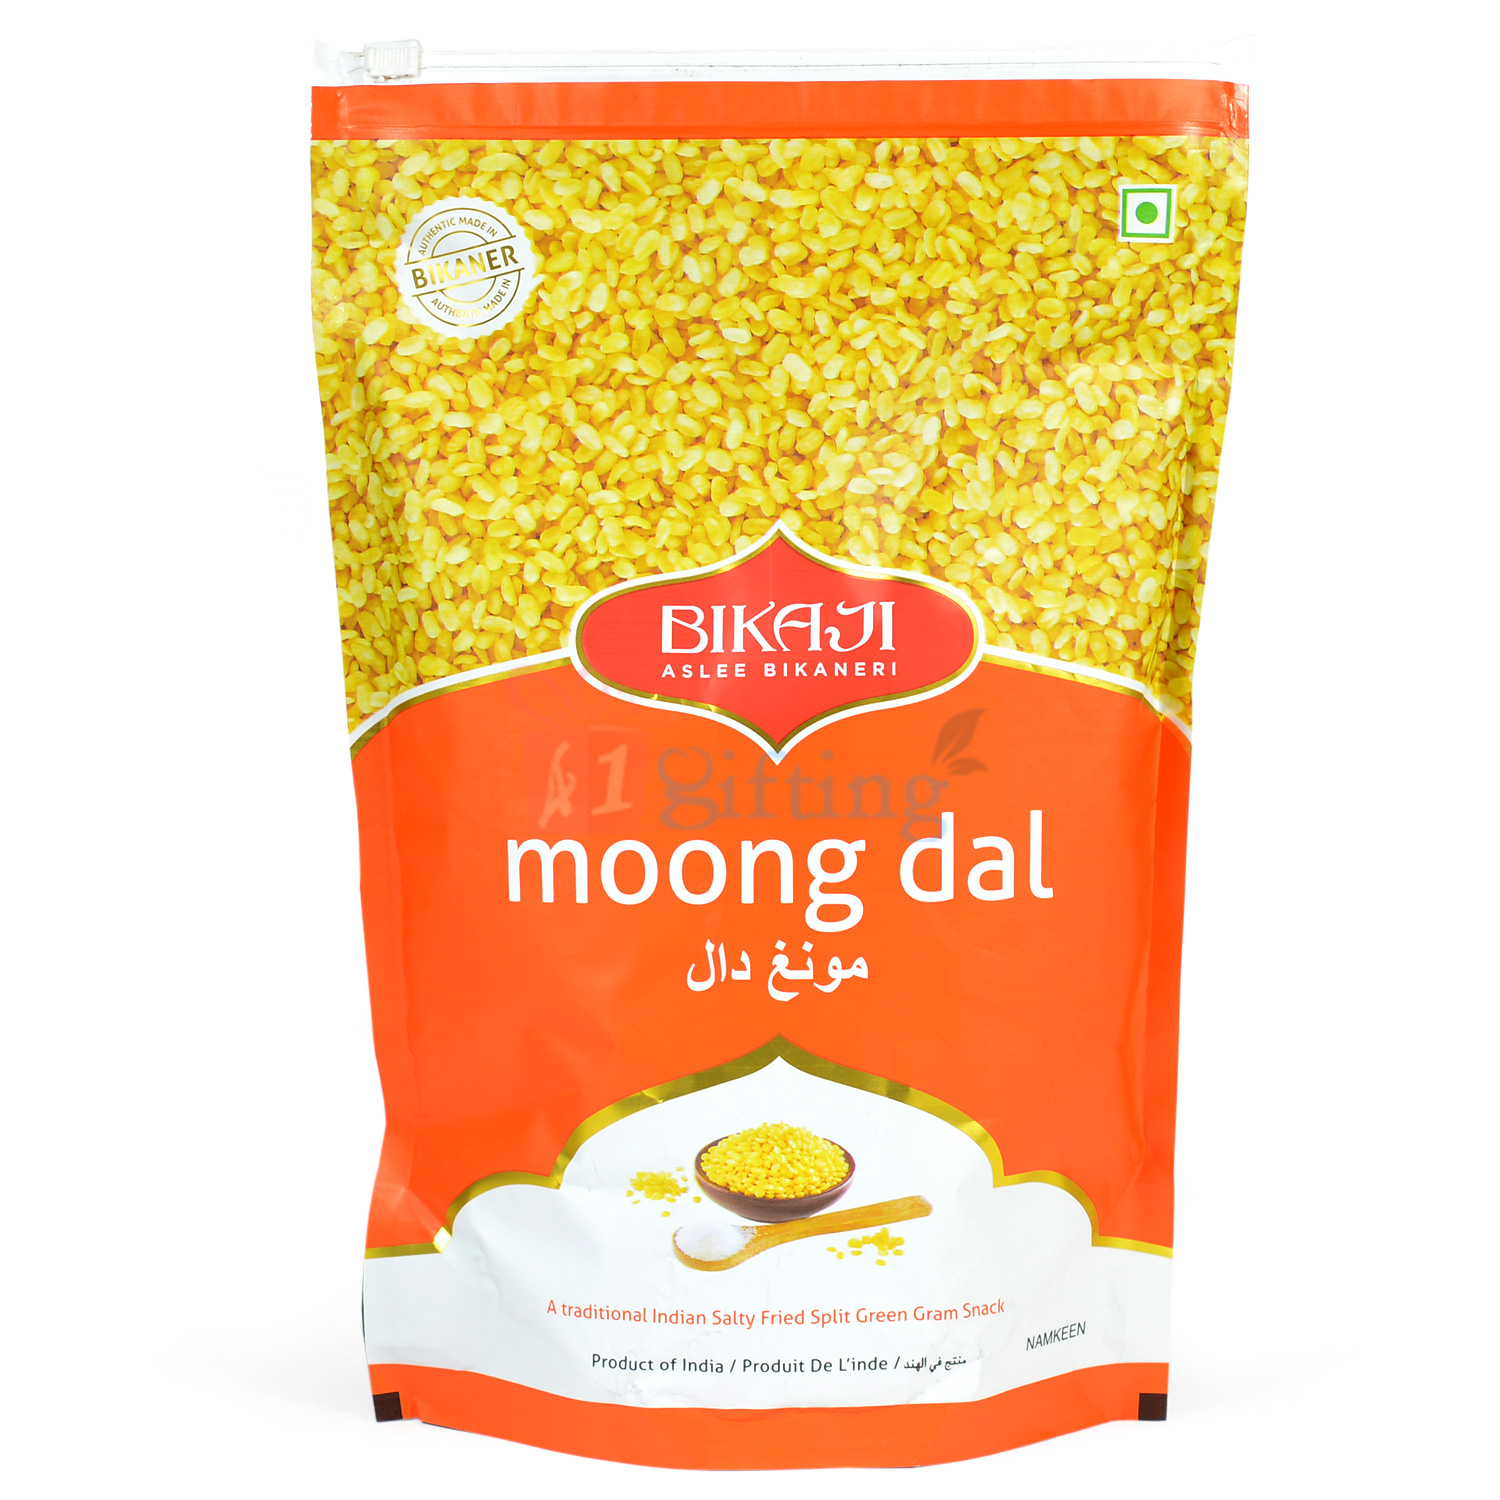 Moong Dal by Bikaji Brand